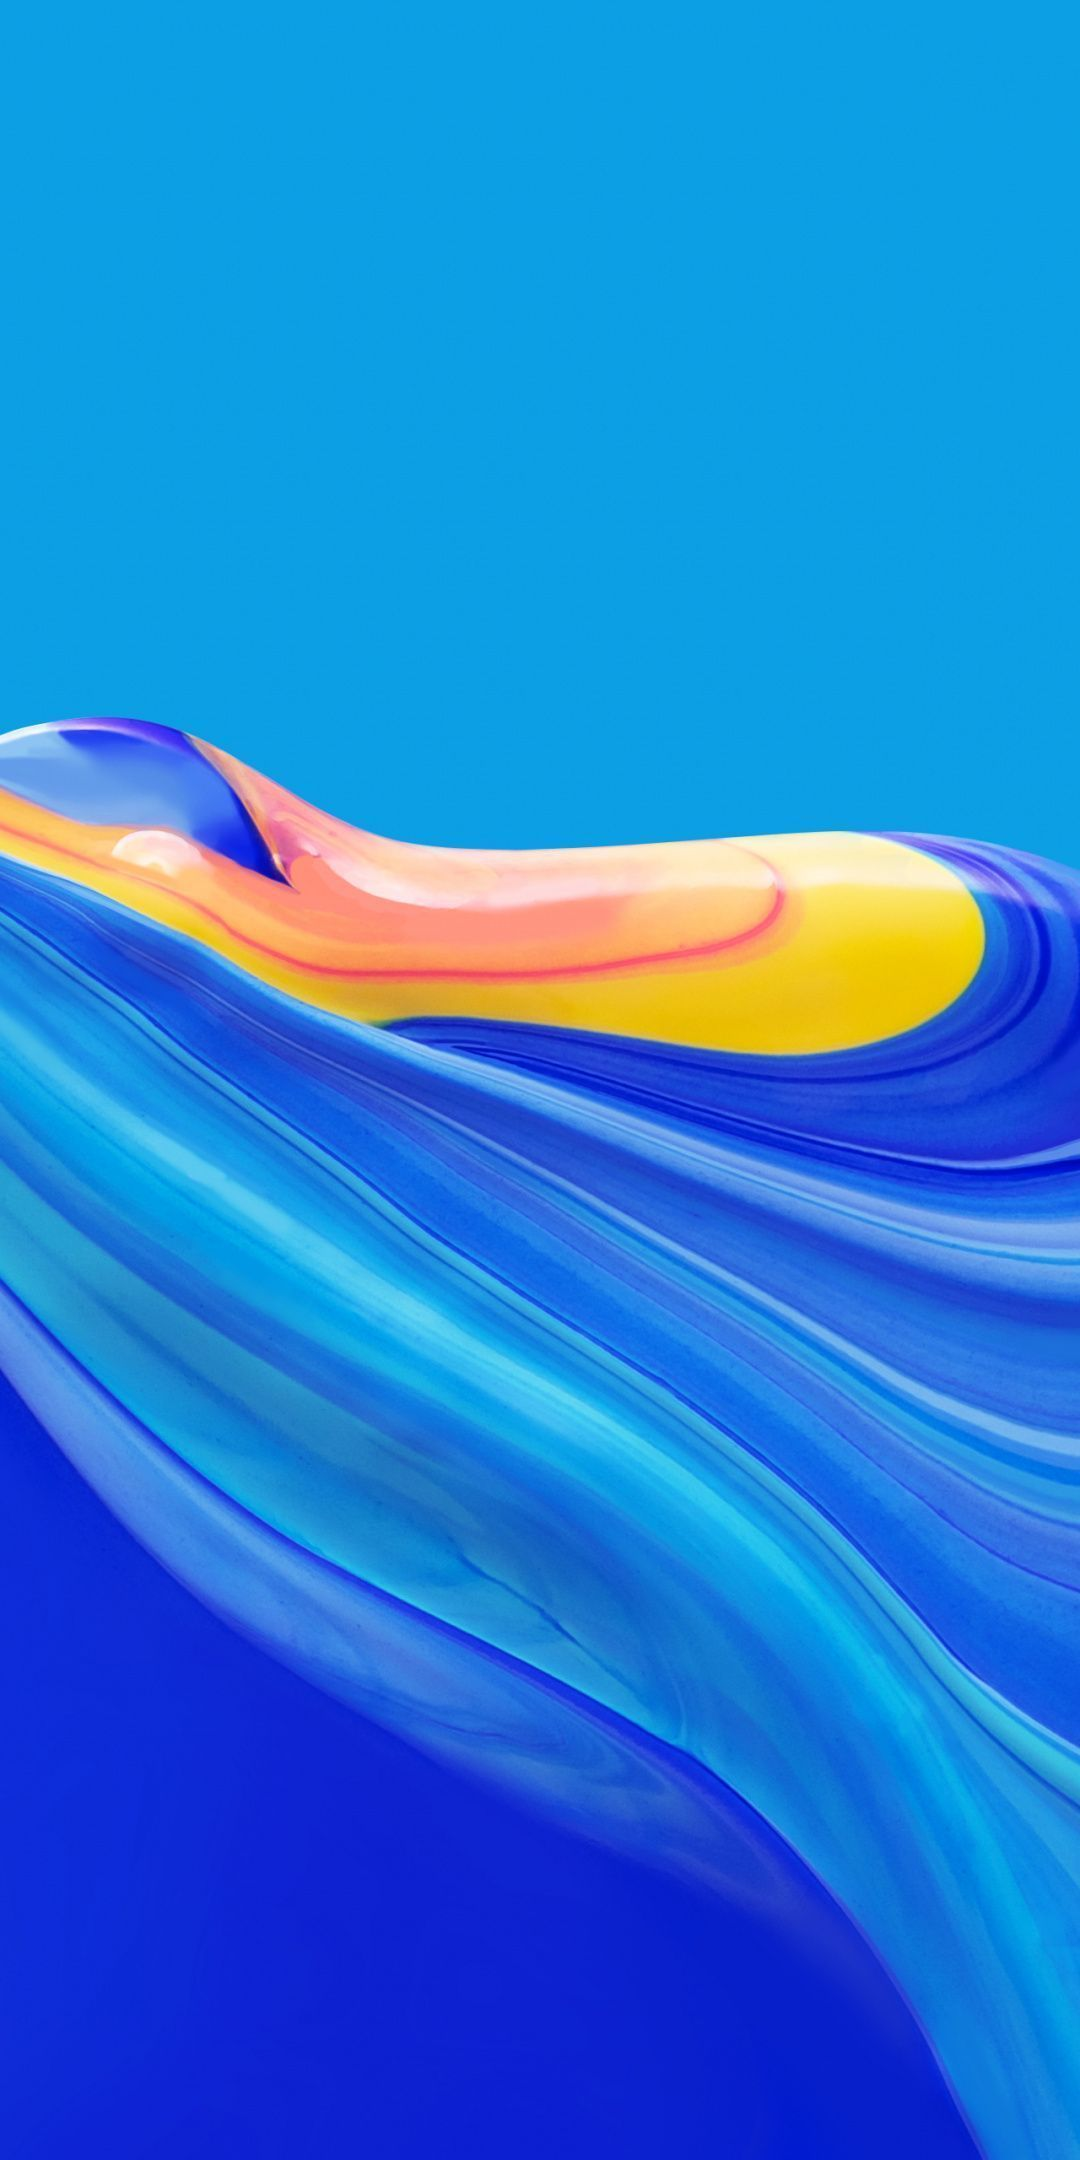 1080x2160 Blue Waves Abstraction Huawei Mediapad M6 Wallpaper In 2020 Abstract Iphone Wallpaper Huawei Wallpapers Samsung Wallpaper